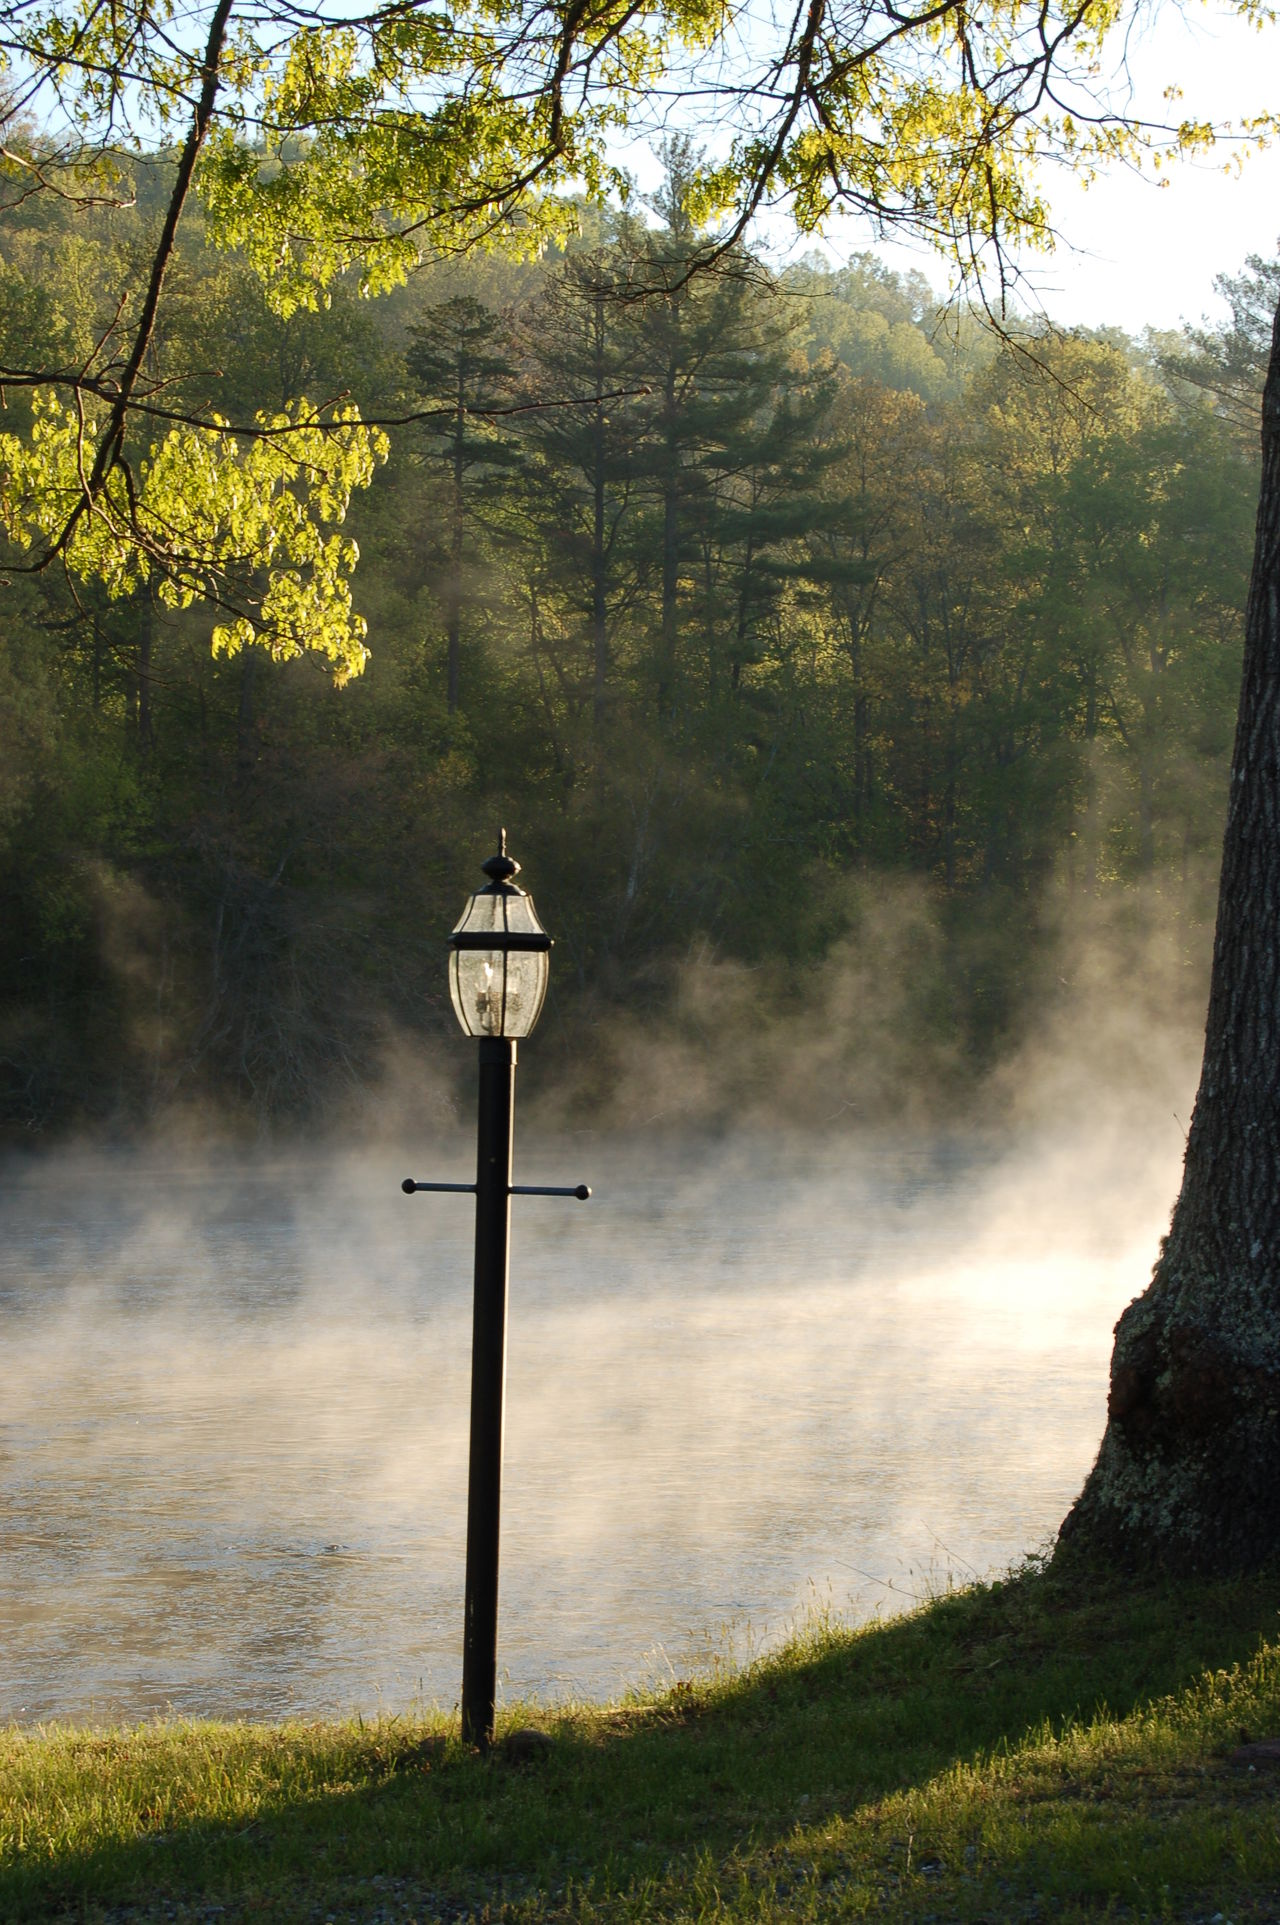 Beauty In Nature Competitive Sport Dampf Day Fog Foggy Foggy Morning Lamp Light And Shadow Morning Nature No People Outdoors Scenics Street Lamp Tranquility Tree Wonderful Moment